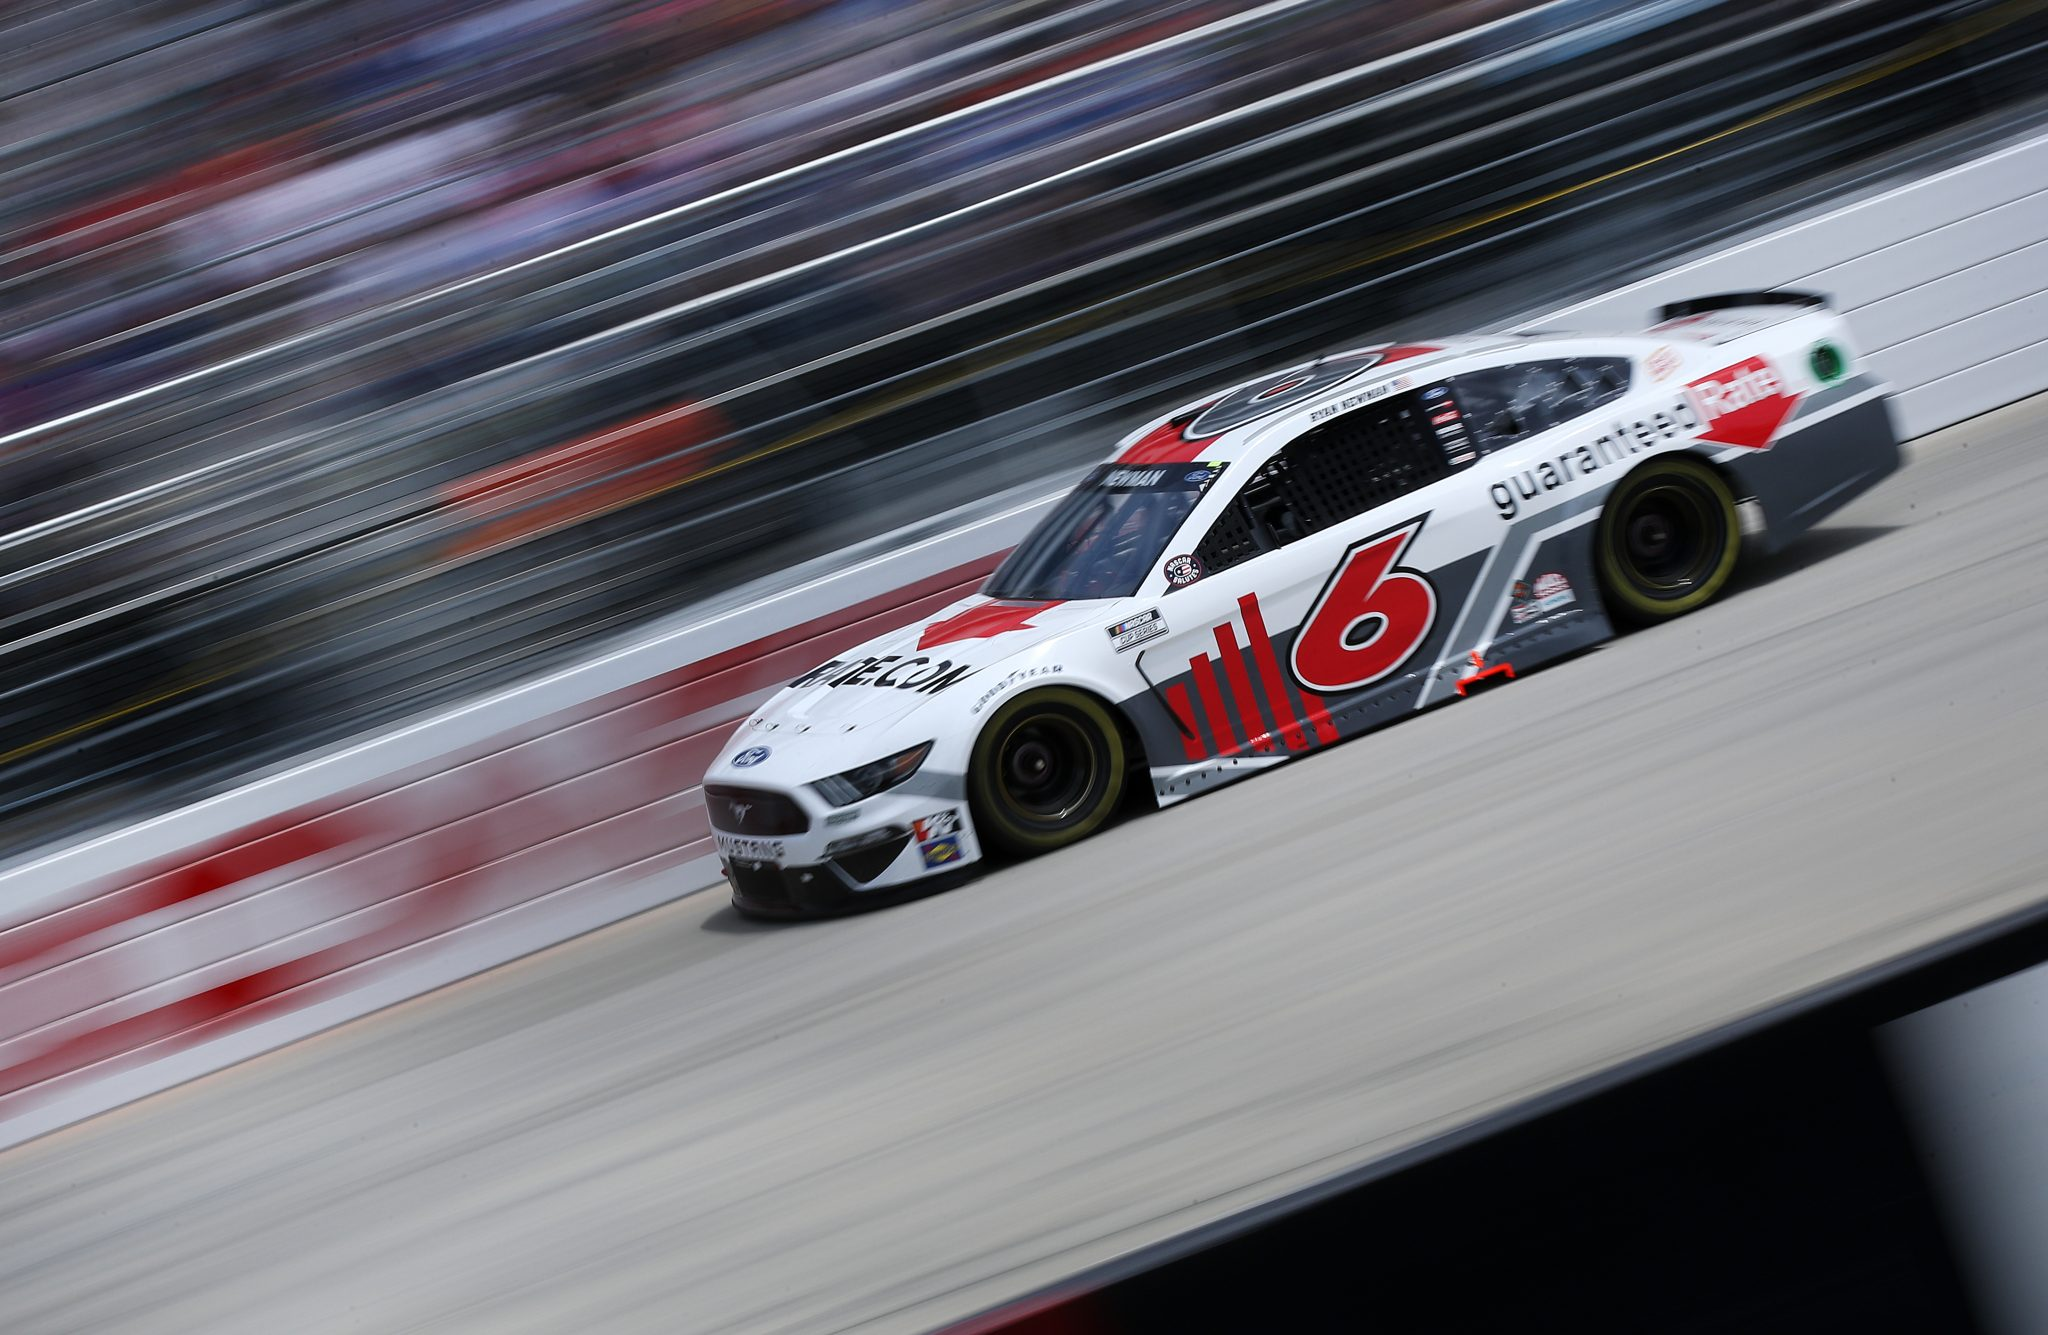 DOVER, DELAWARE - MAY 16: Ryan Newman, driver of the #6 Guaranteed Rate Ford, races during the NASCAR Cup Series Drydene 400 at Dover International Speedway on May 16, 2021 in Dover, Delaware. (Photo by Sean Gardner/Getty Images) | Getty Images